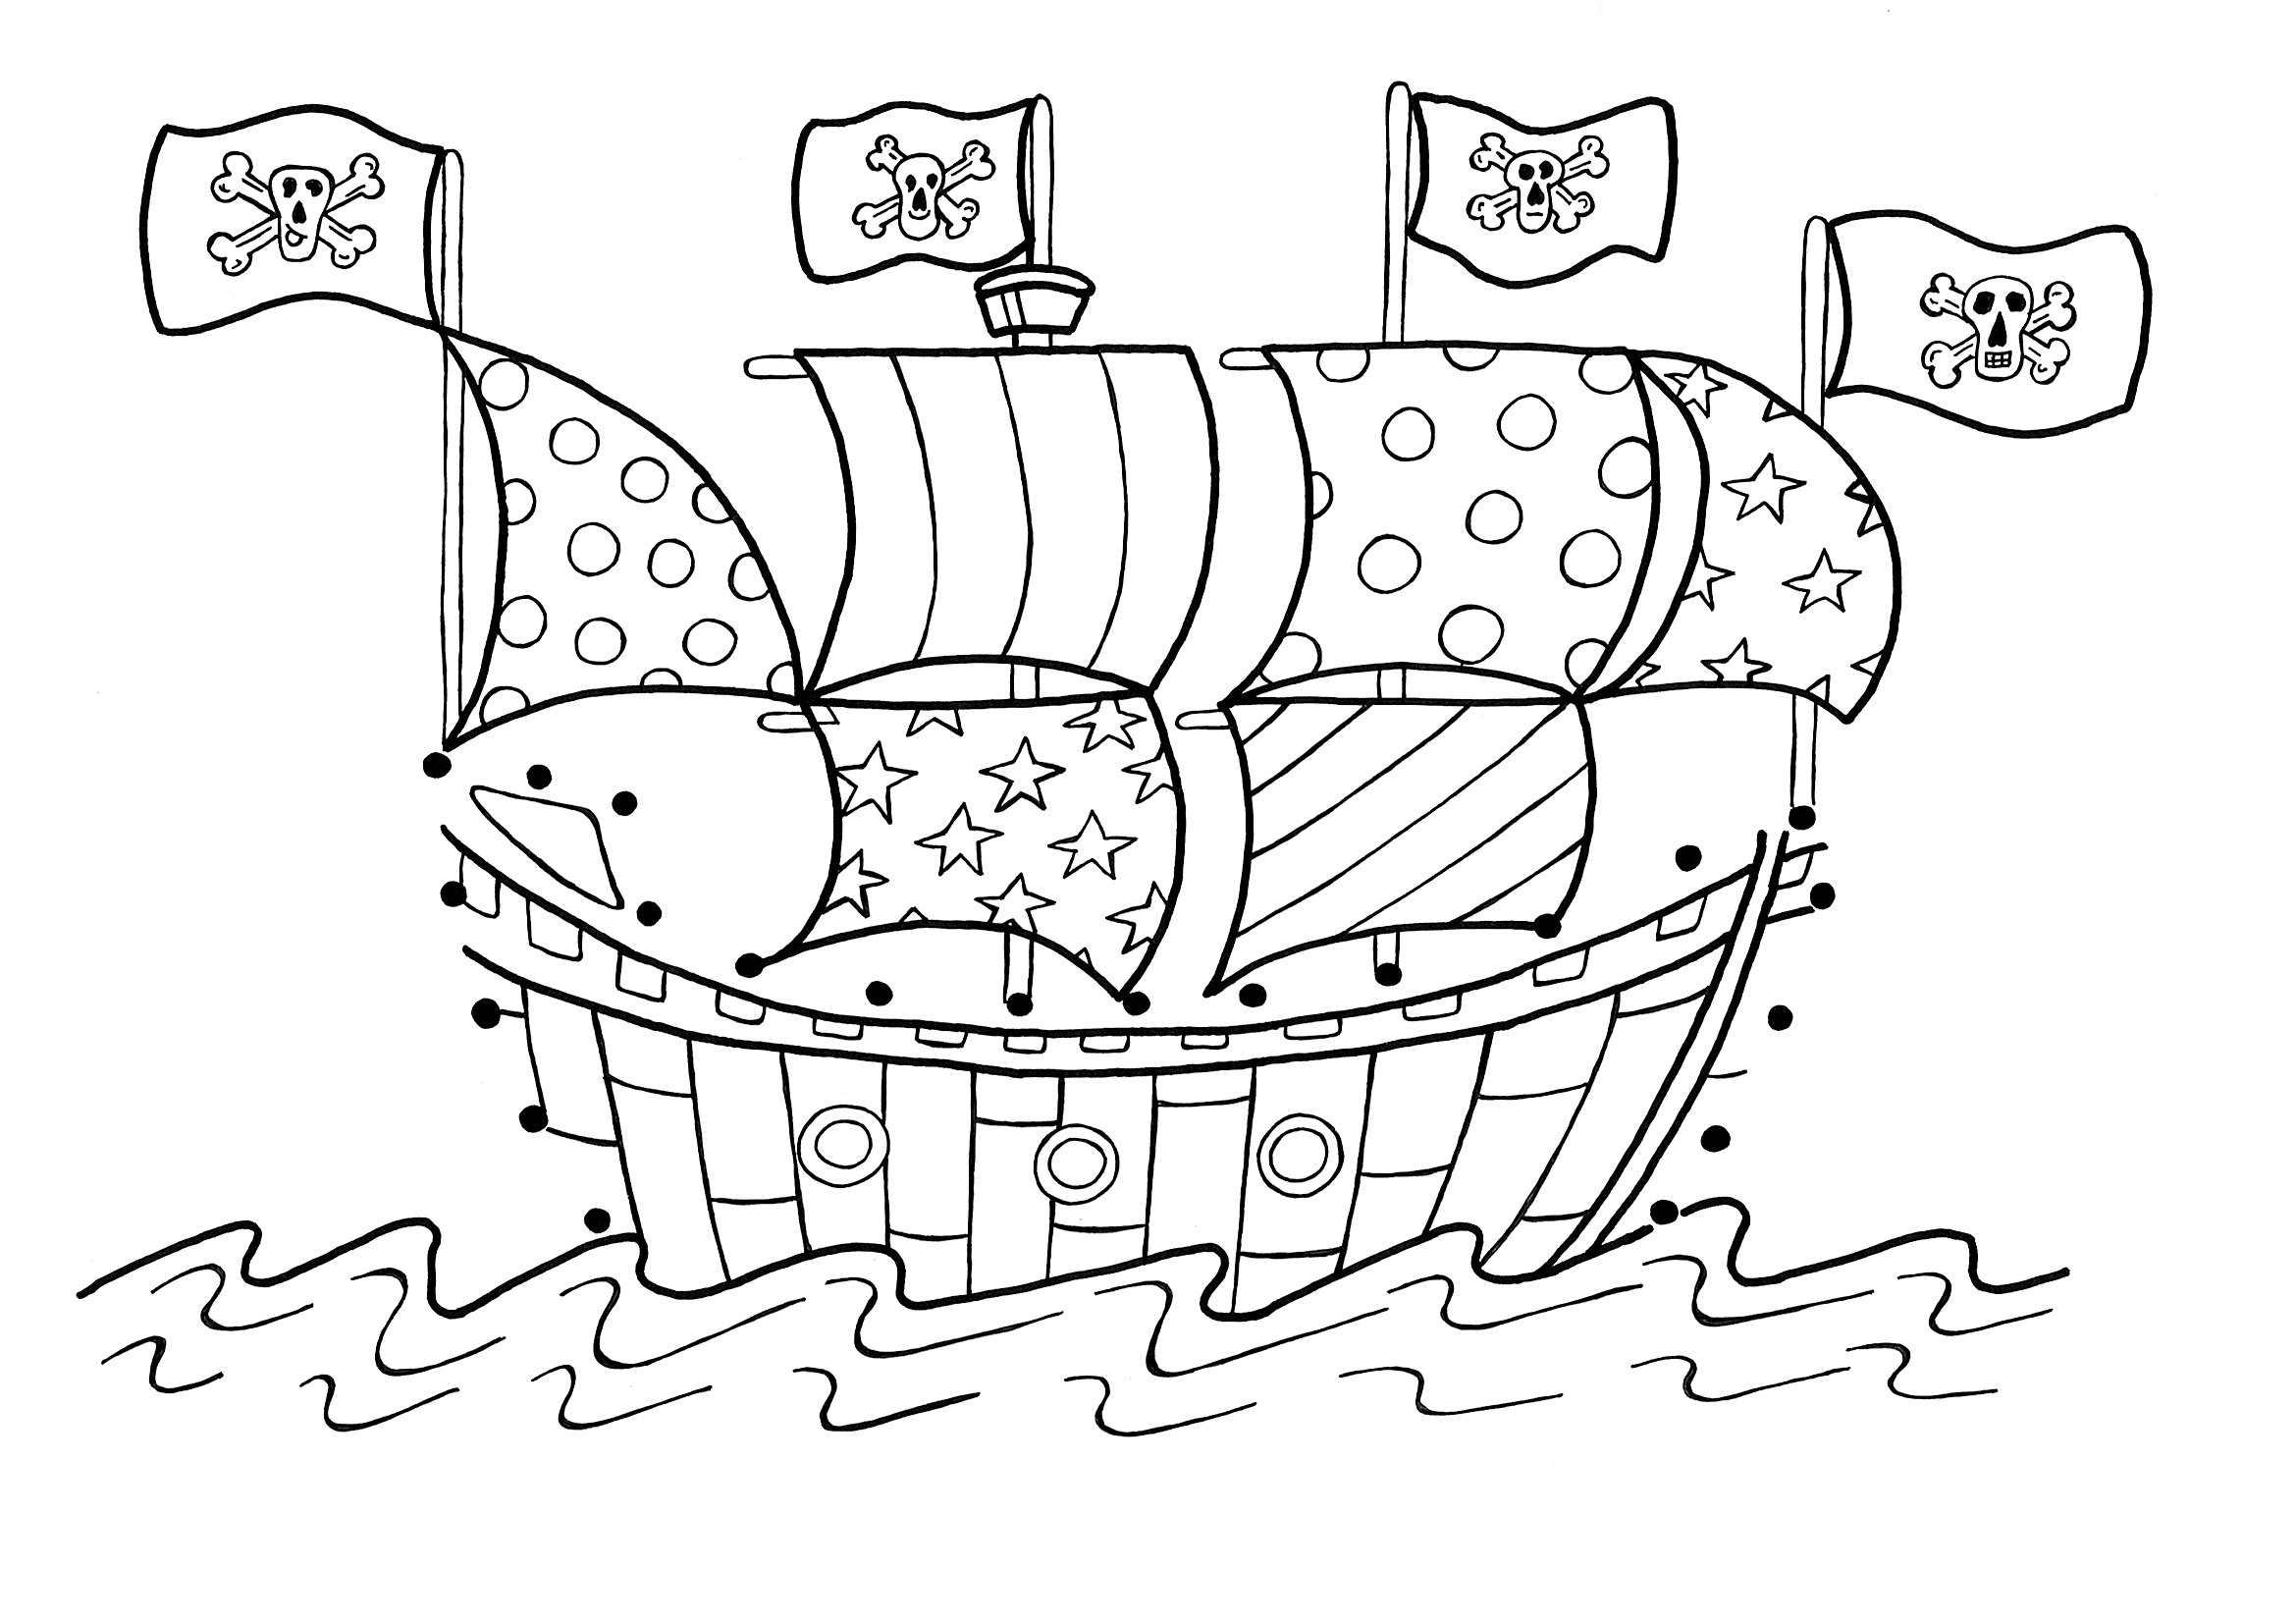 pirate coloring pages pirates coloring pages download and print pirates coloring pages pirate